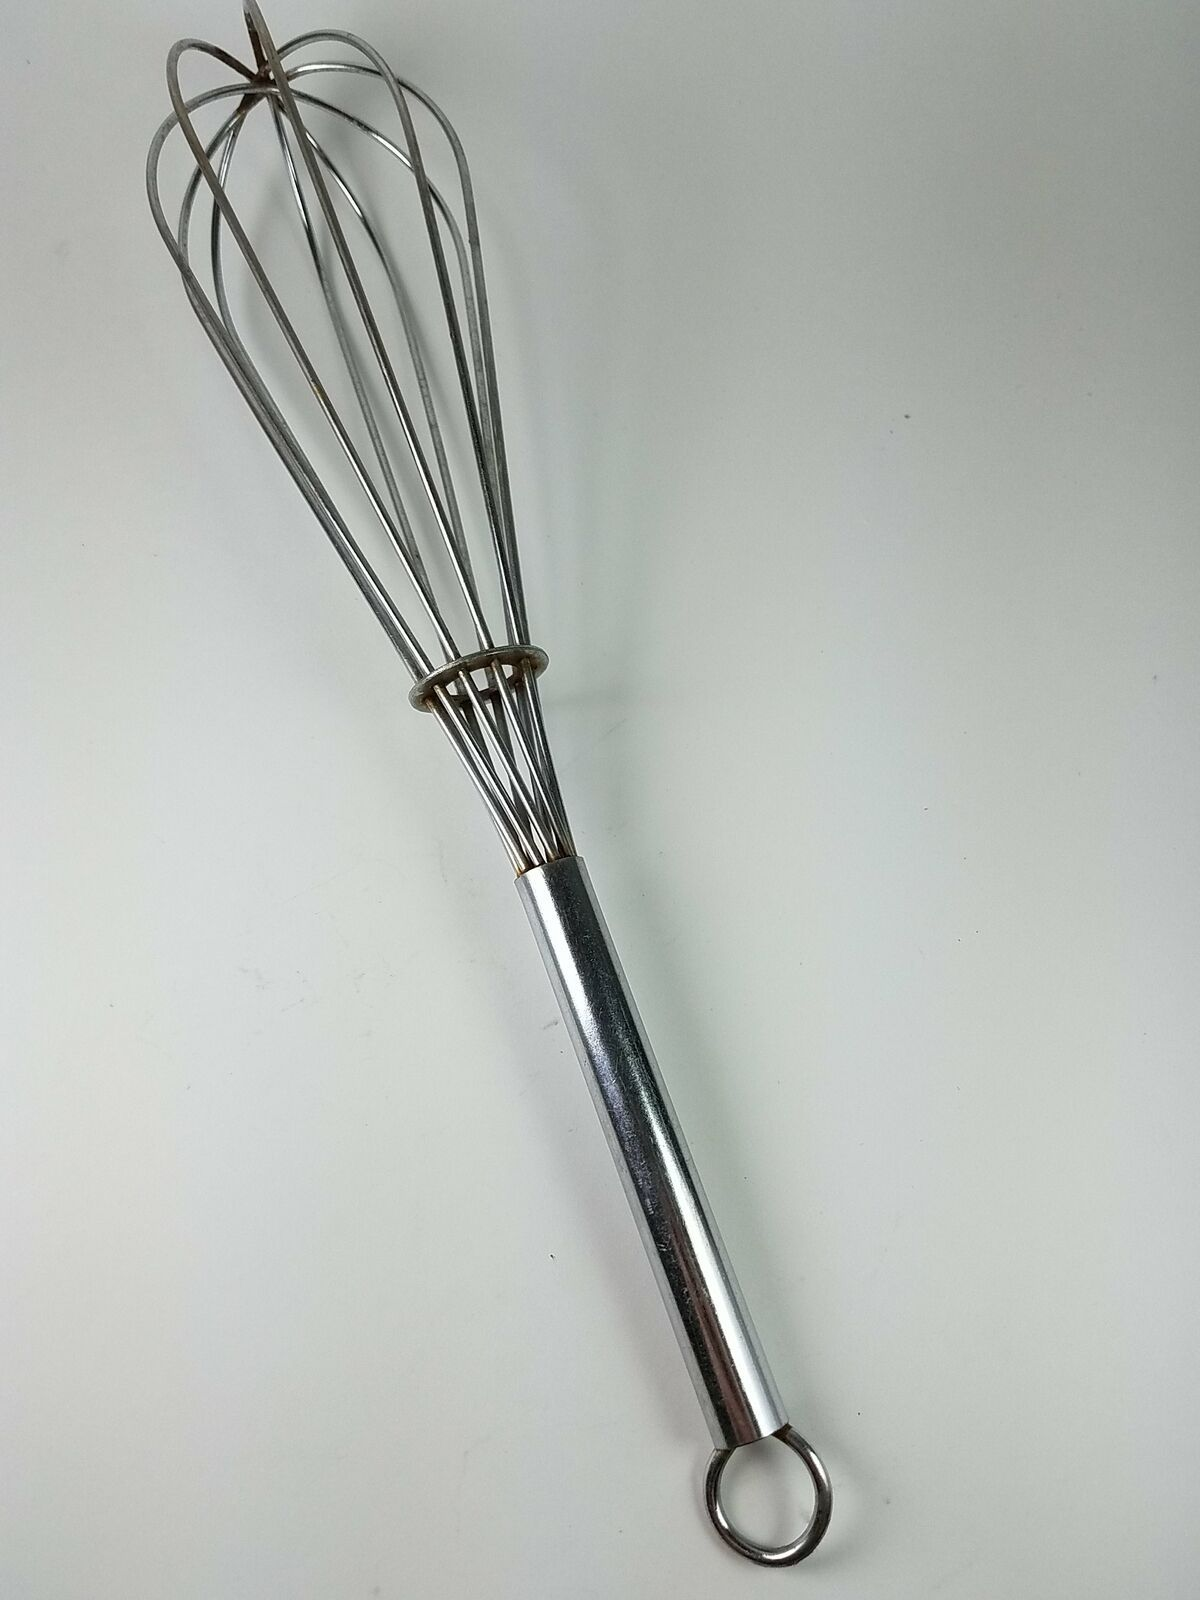 Primary image for Wire Mixer Beater Whisk Kitchen Tool